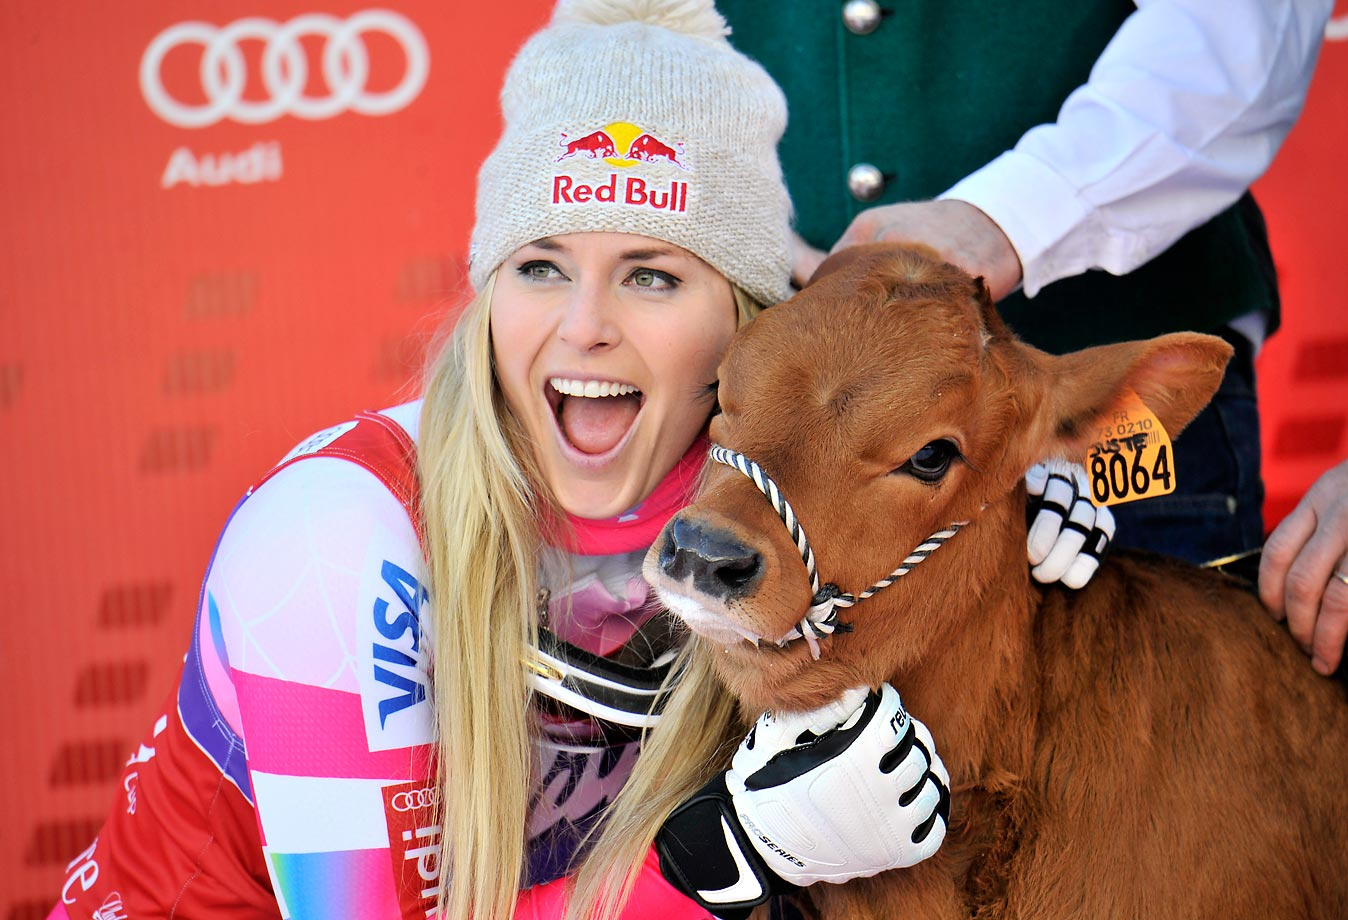 Lindsey Vonn took first place at the Audi FIS Alpine World Cup in December 2014 and won a cow named Winnie.